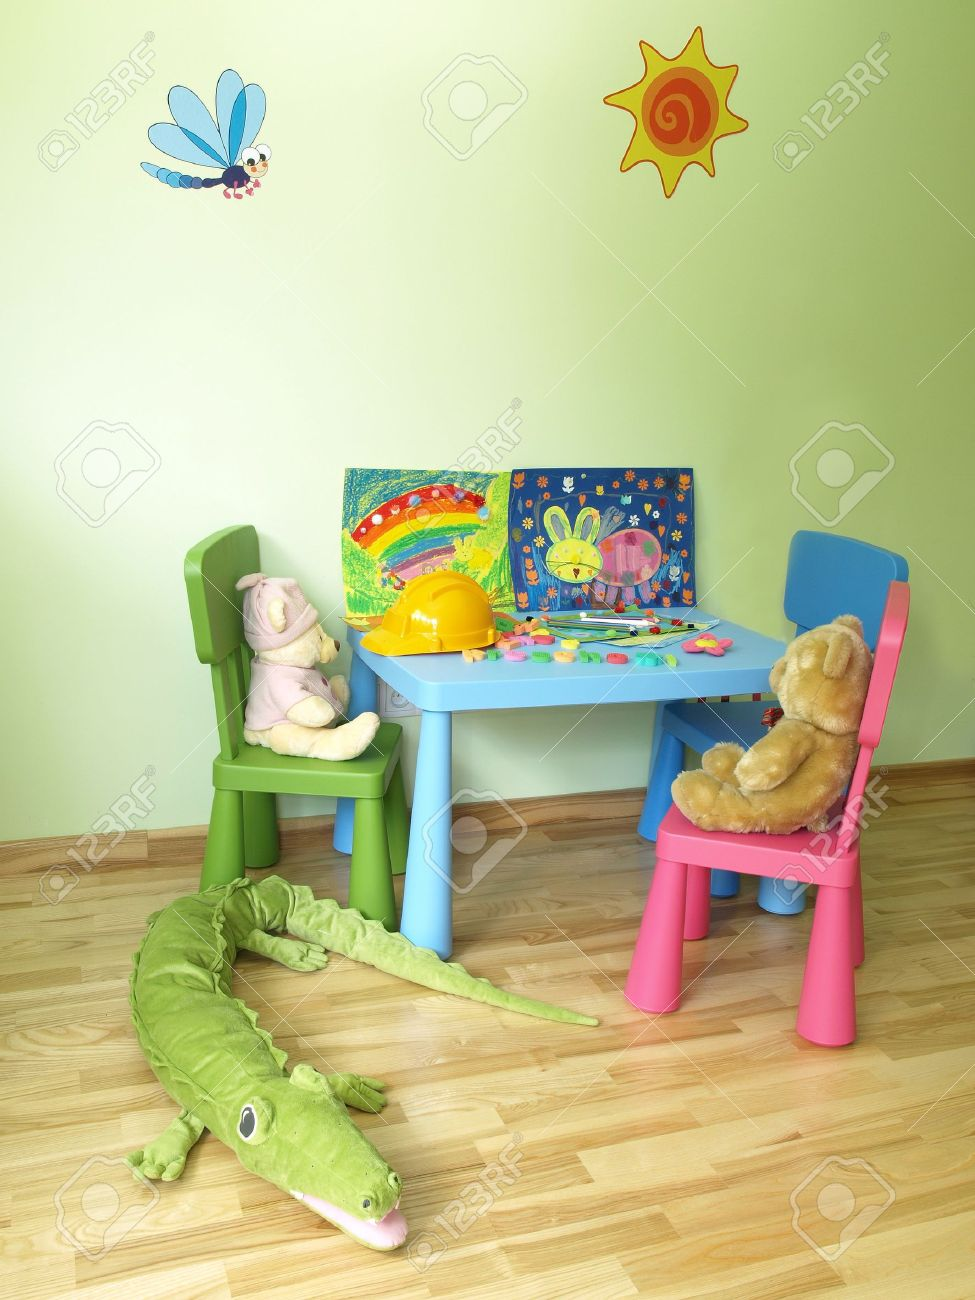 Modern child's room with equipment and toys Stock Photo - 14608643